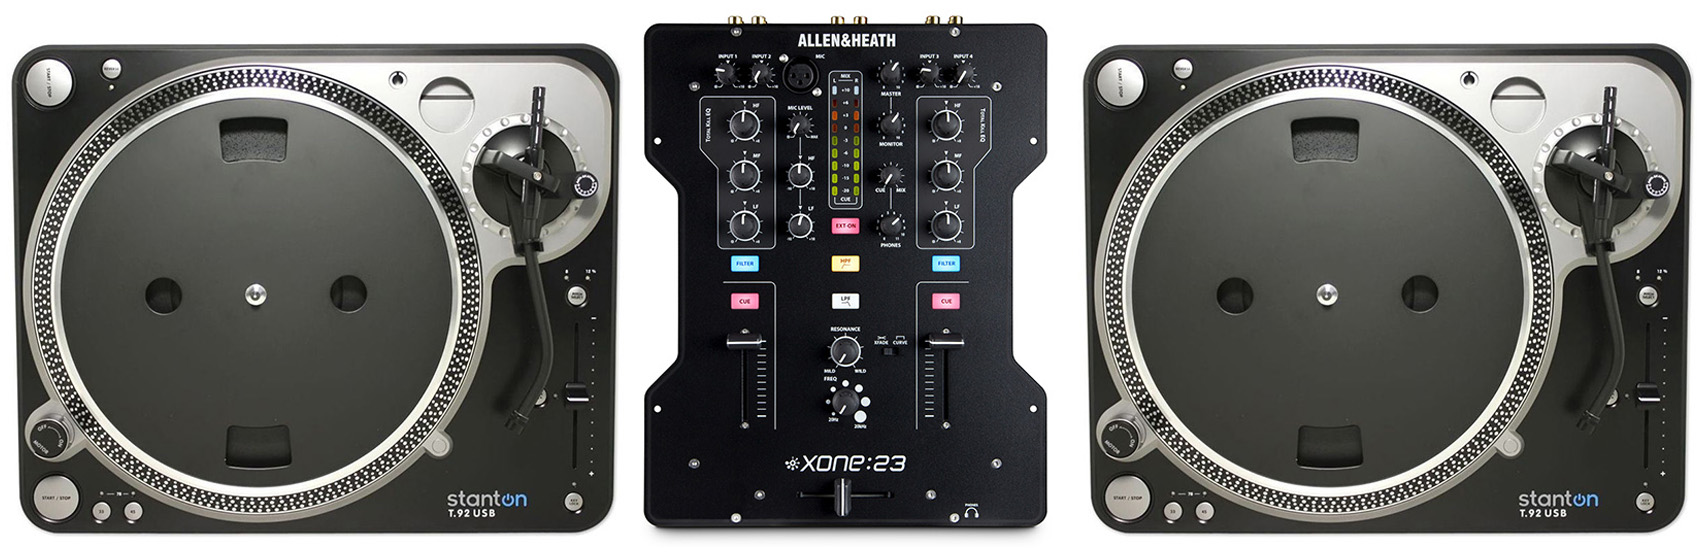 (2) Stanton T.92 USB Direct Drive Turntable T.92USB T92 + Allen & Heath XONE:23 Mixer by Stanton